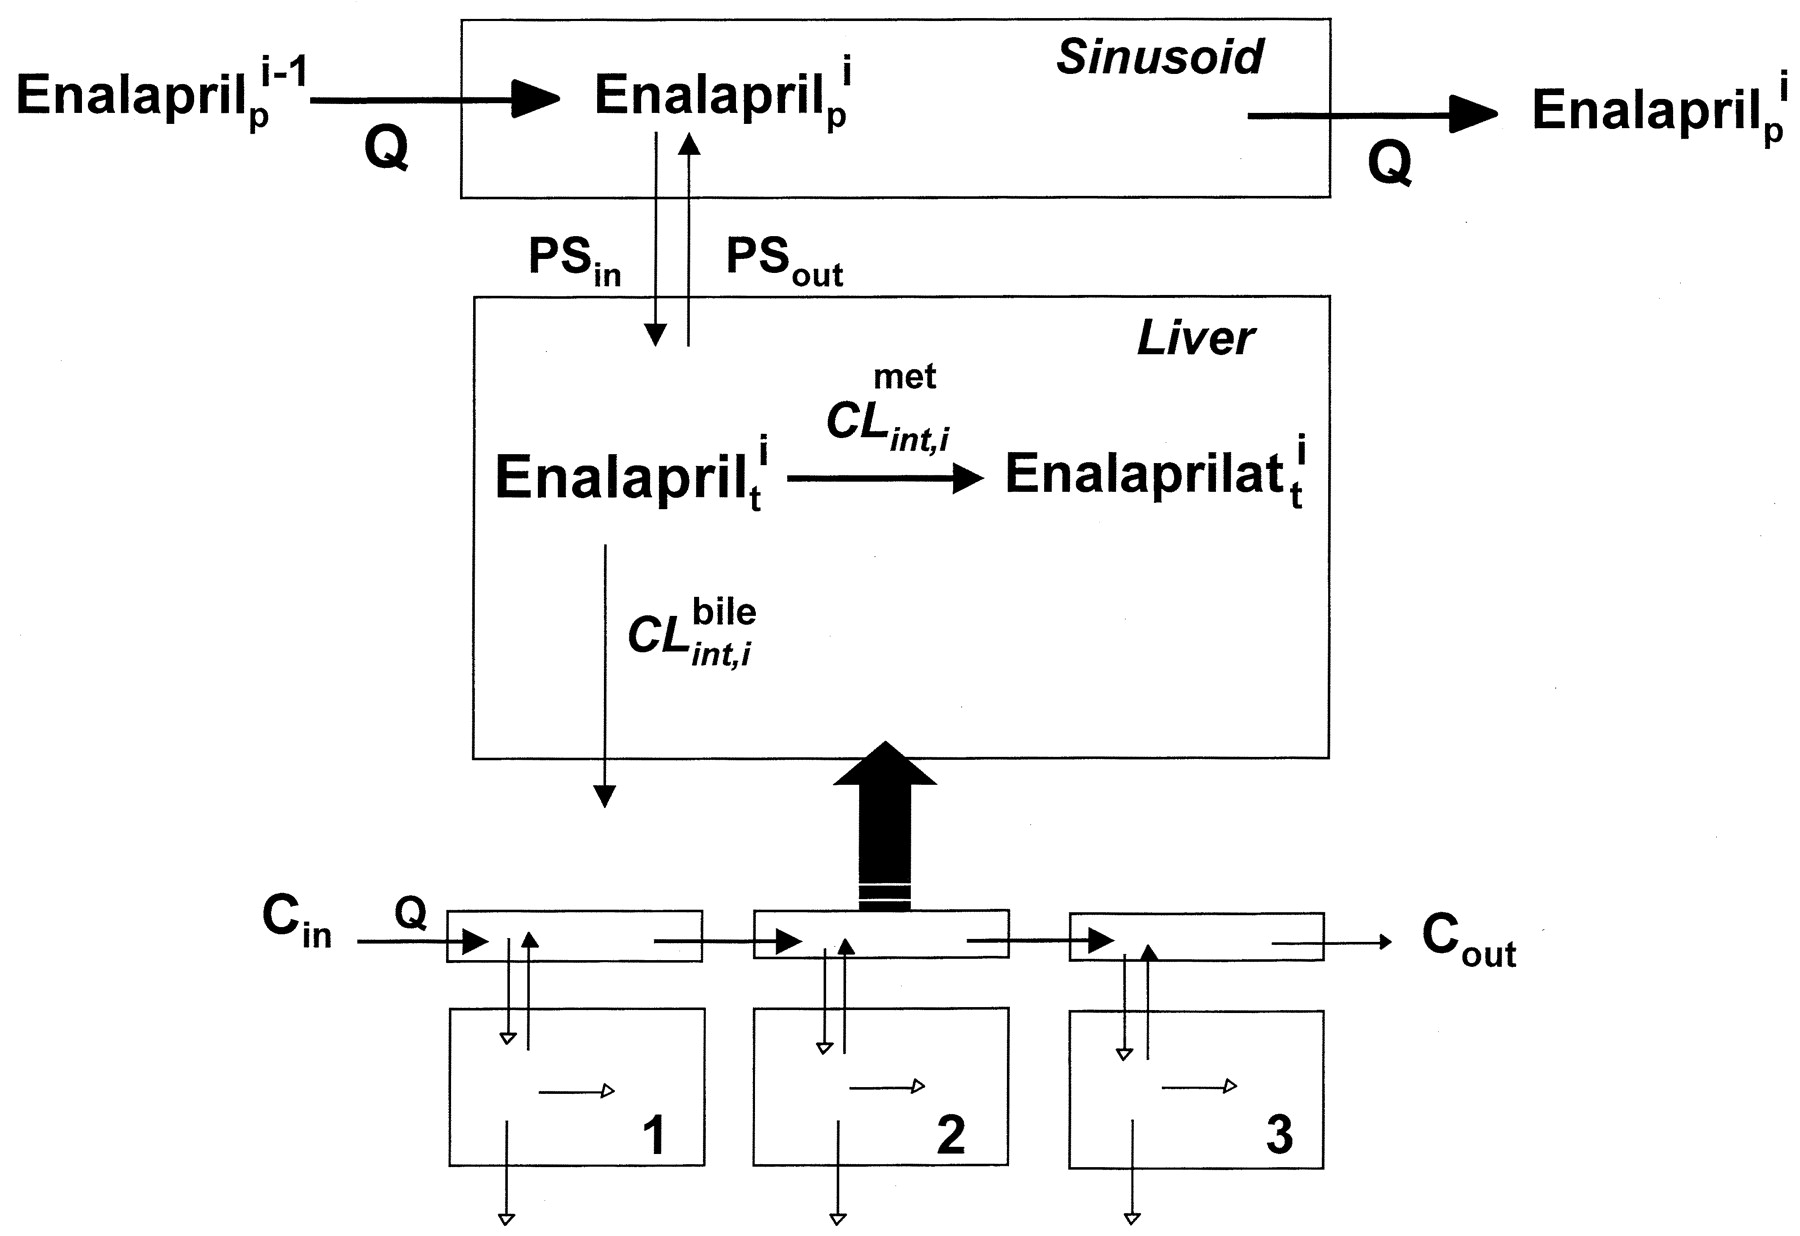 Effect of Zonal Transport and Metabolism on Hepatic Removal ...